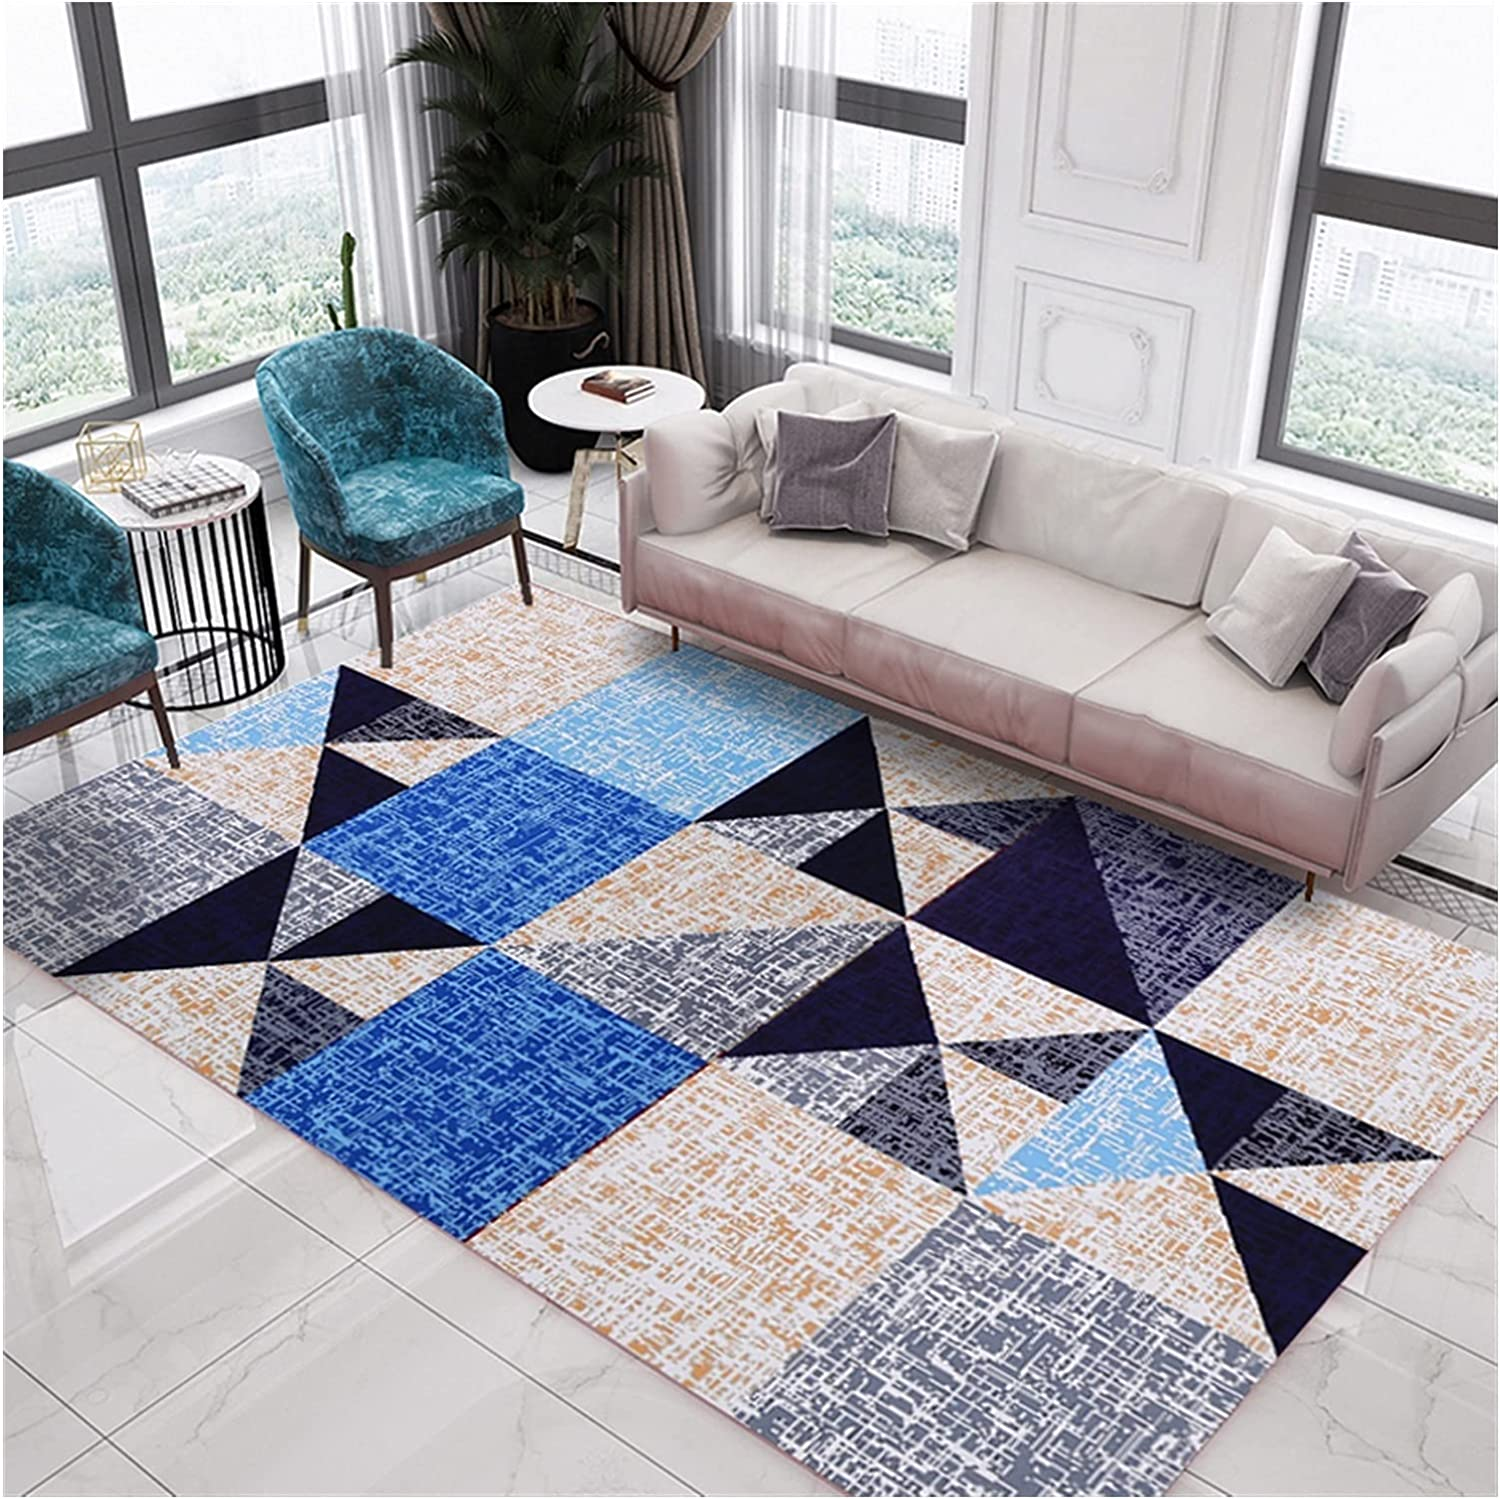 Runner Columbus Mall Rug for Hallway quality assurance Durable Non-Slip Hall Breathable Mats No